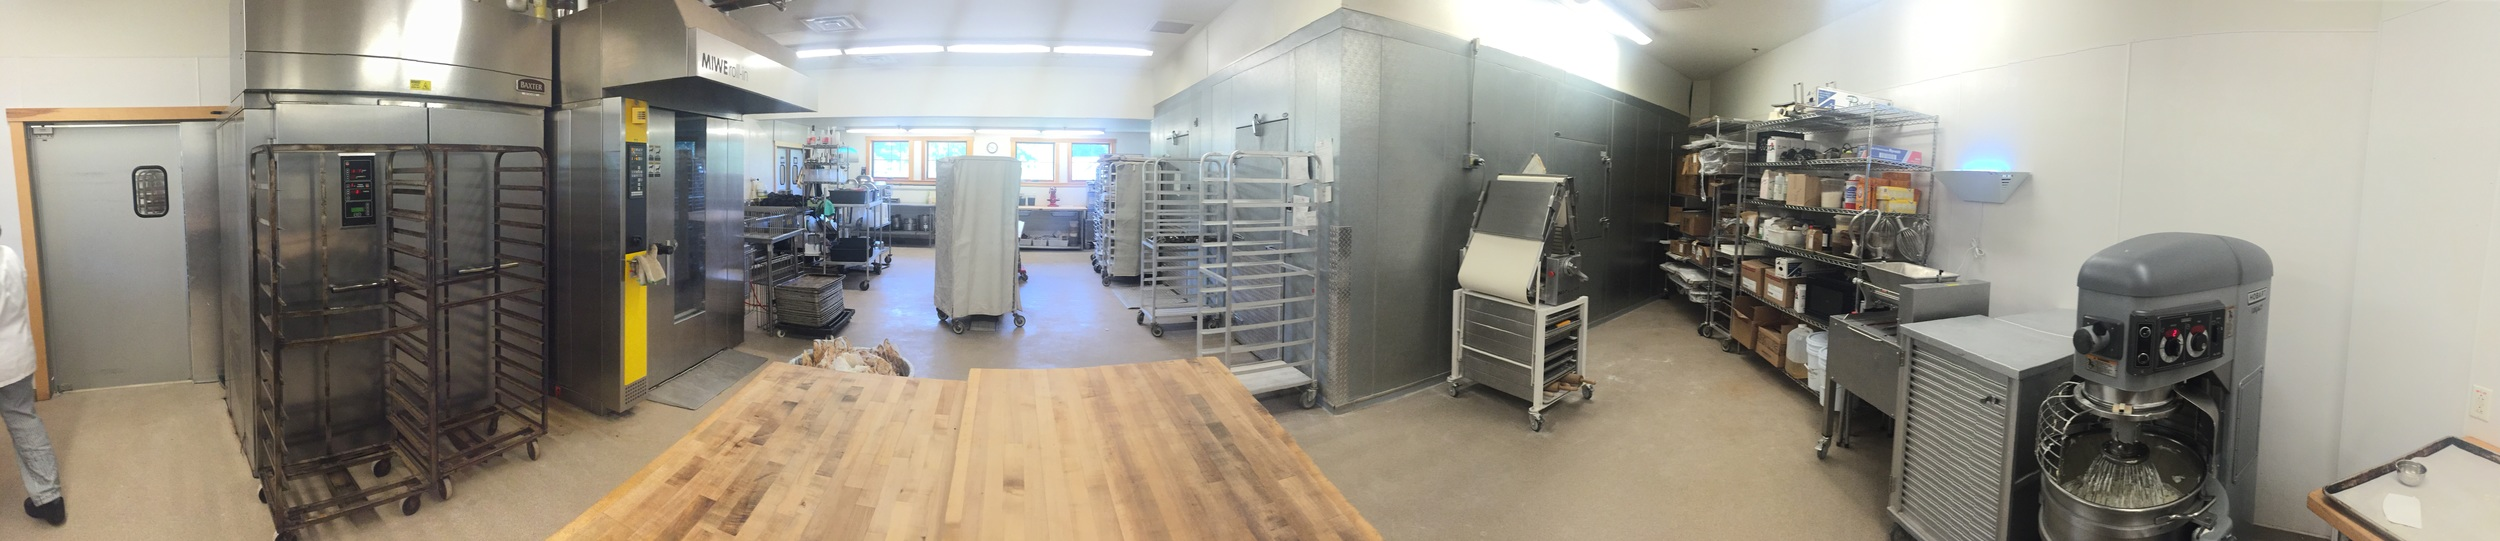 Panoramic view of a professional pastry kitchen!